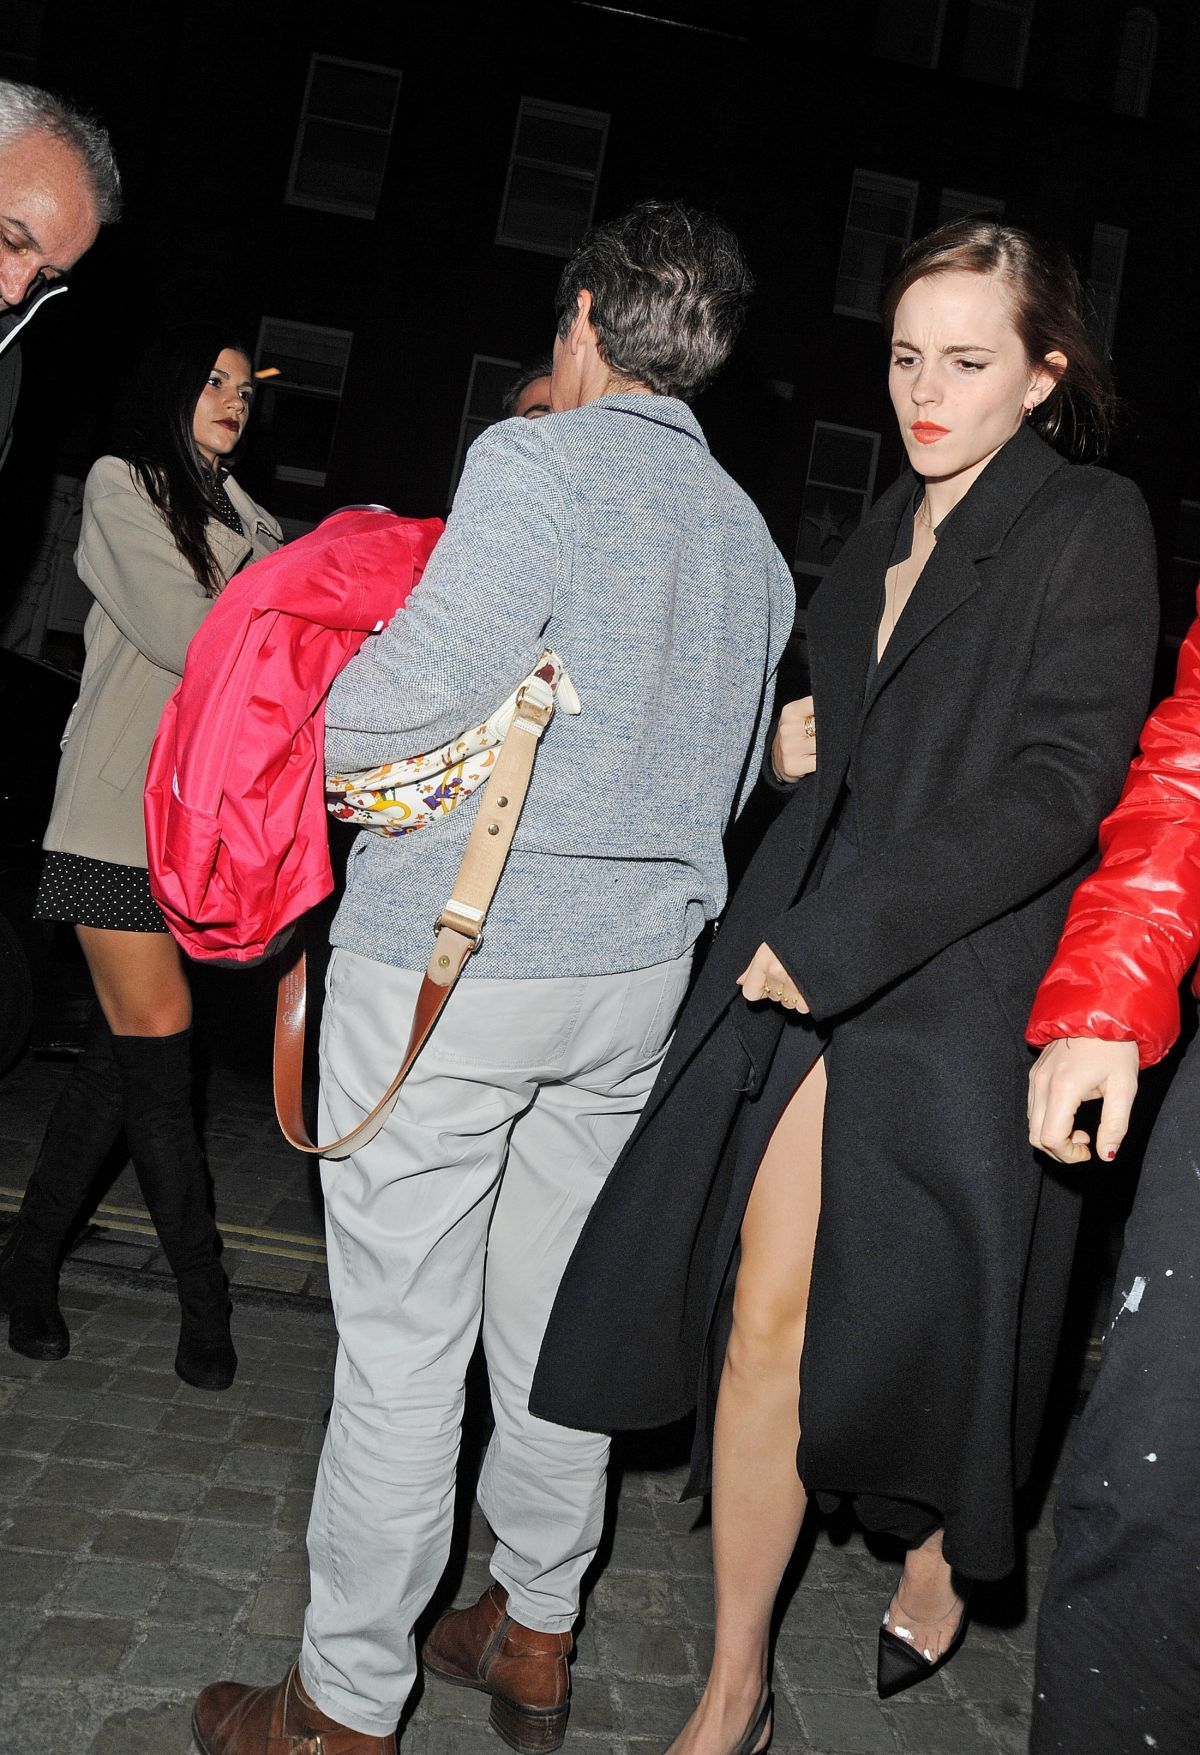 Emma Watson Arriving at Chiltern Firehouse in London